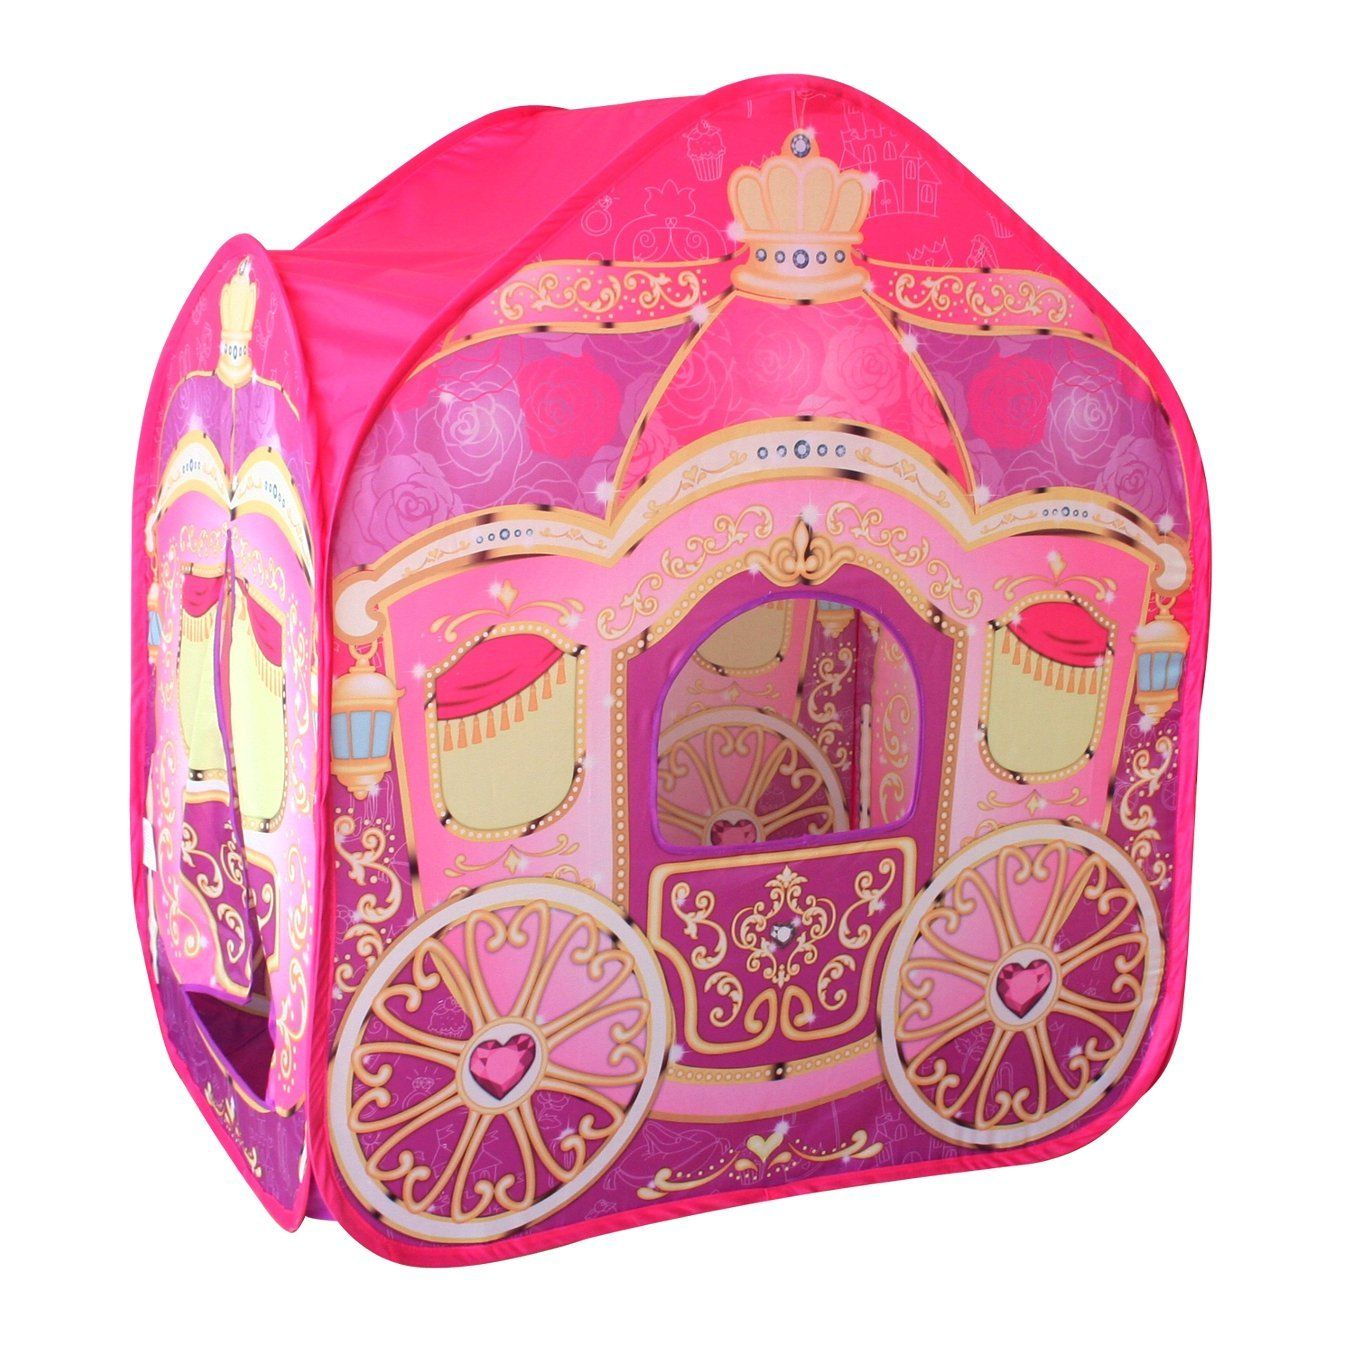 NewPrincess Carriage Cinderella Wagon Pop-up Play Tent Girls Pretend Playhouse This Cinderella Wagon Carriage Pop-up Play Tent is an adorable gift for all ...  sc 1 st  Pinterest & Amazon.com: POCO DIVO Princess Carriage Cinderella Wagon Pop-up ...